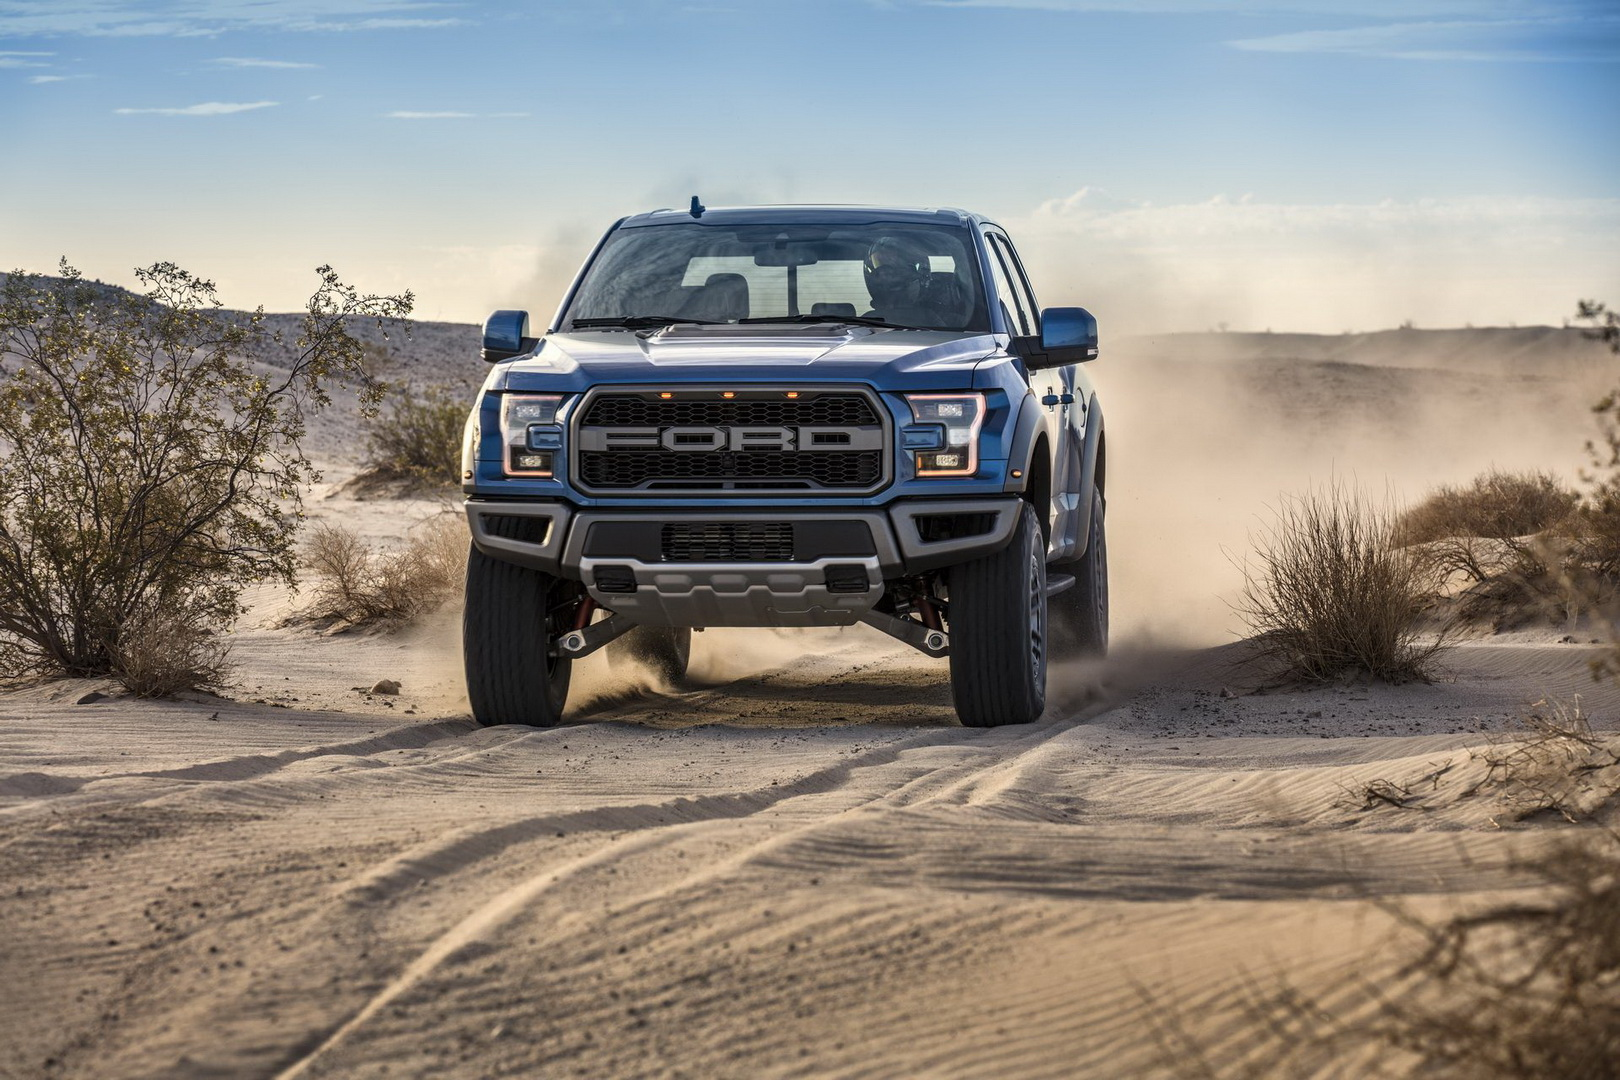 A new Ford Bronco will be introduced in 2020 as part of Fords lineup This rugged midsized SUV will bring back the excitement drivers remember